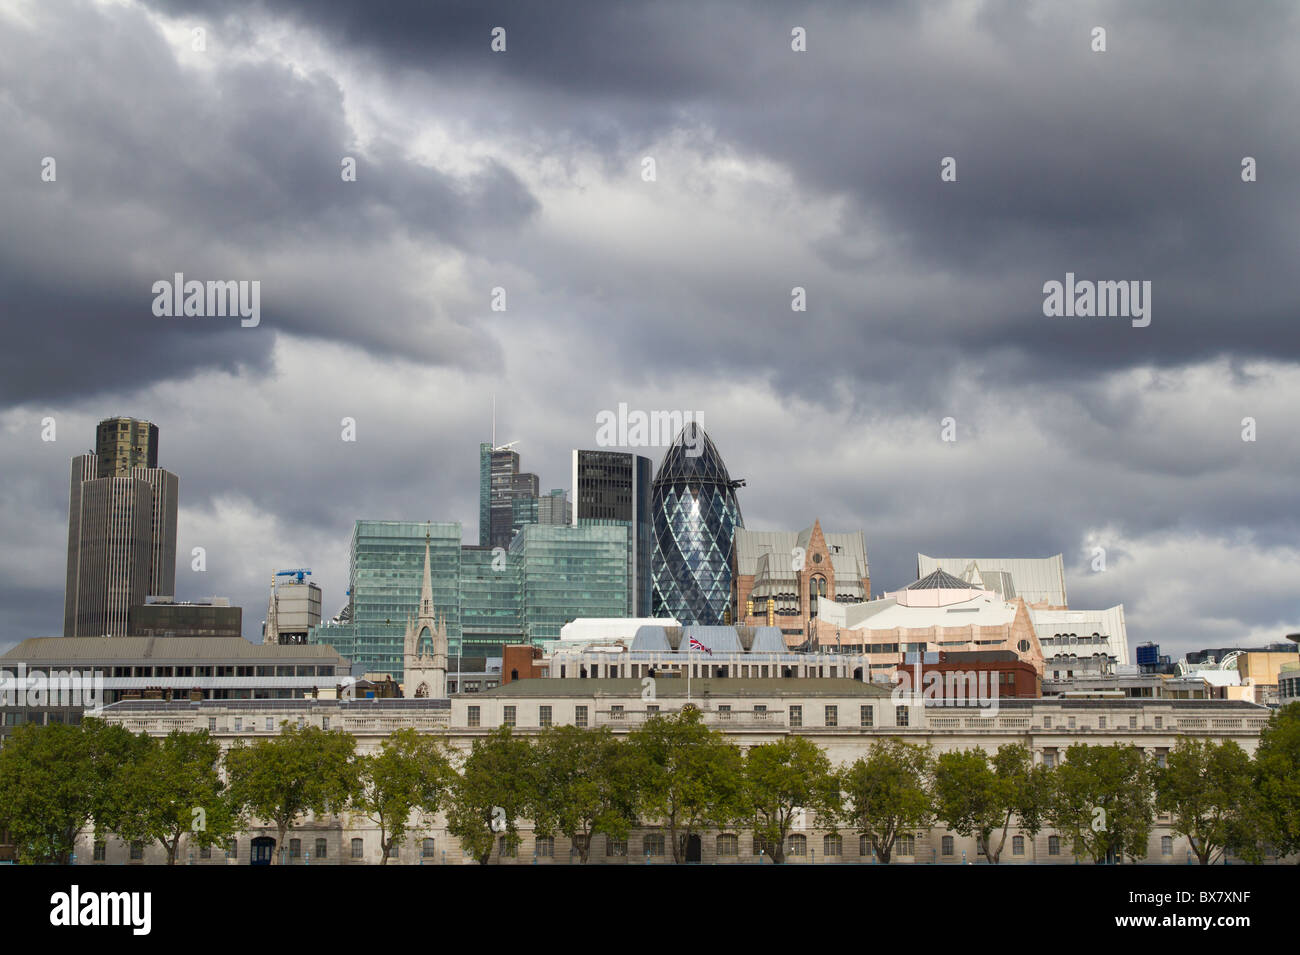 London Cityscape with dark clouds above - Stock Image